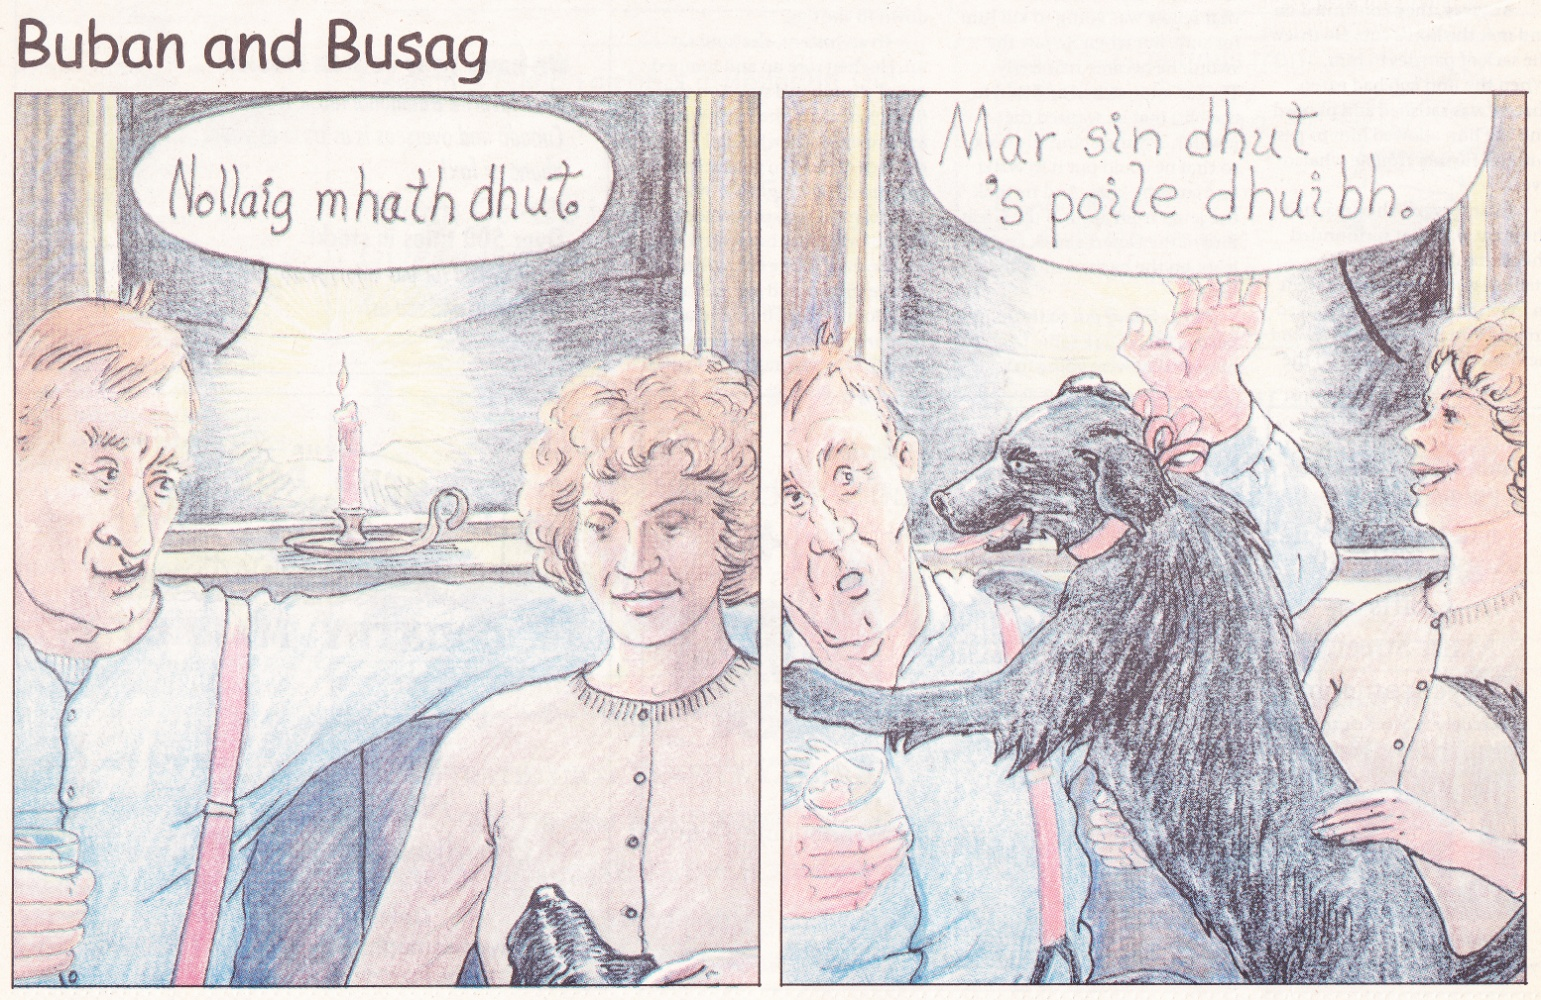 C:\Users\Robert\Documents\CARTOONING ILLUSTRATION ANIMATION\IMAGE CARTOON\IMAGE CARTOON B\BUBAN'S  BUSAG, AmBraighe, Winter 1998,99, 24.jpg